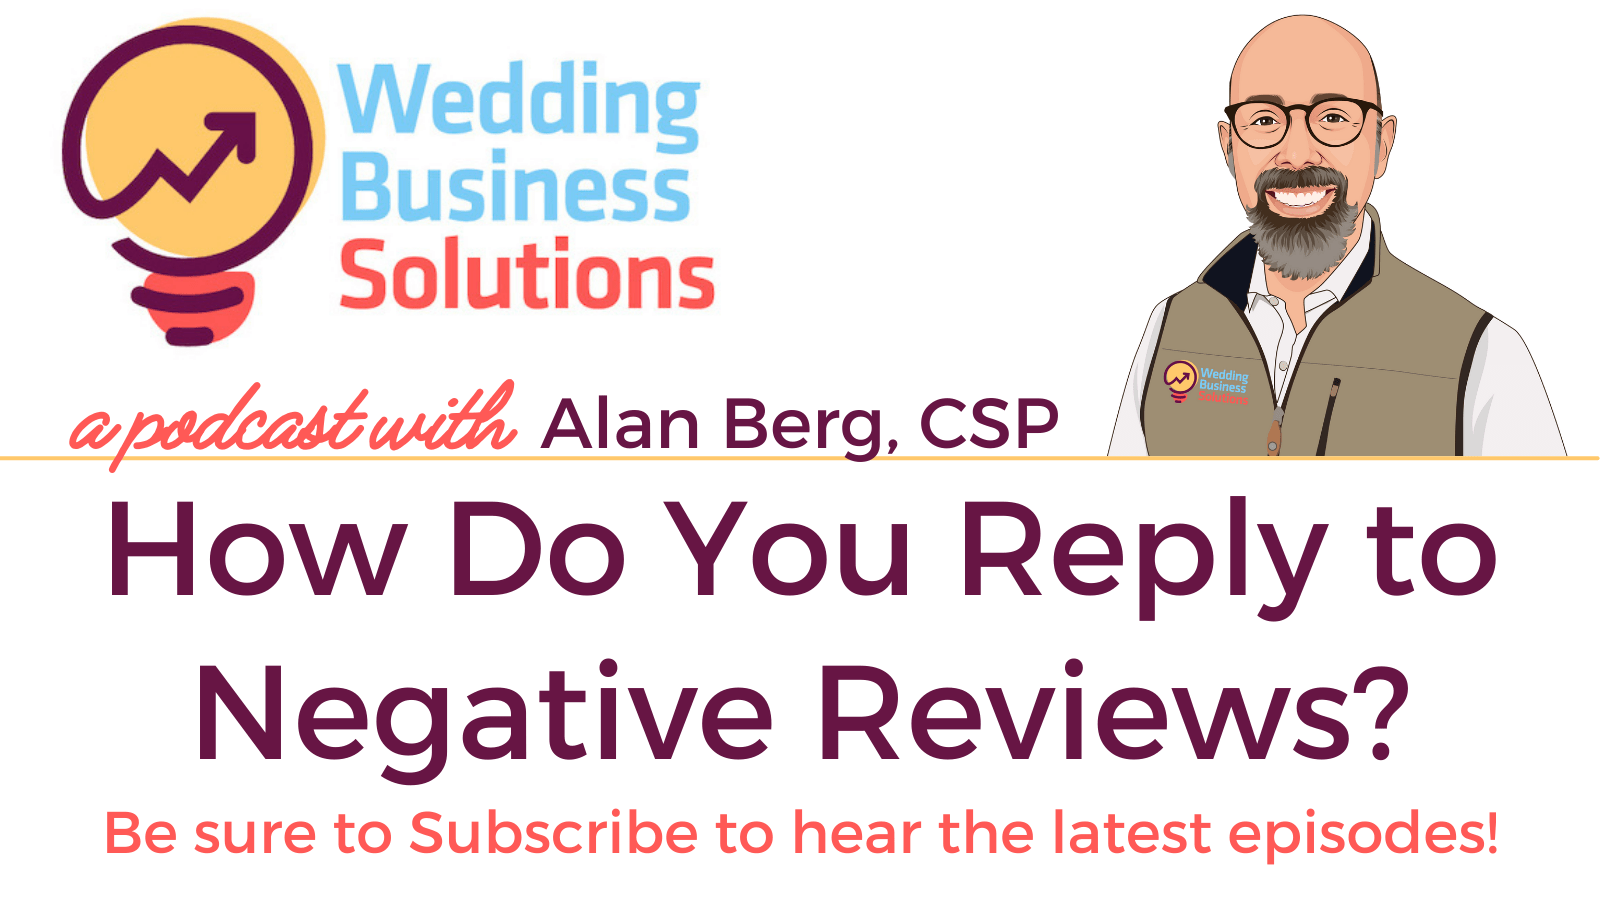 Wedding Business Solutions Podcast with Alan Berg CSP - How Do You Reply to Negative Reviews?